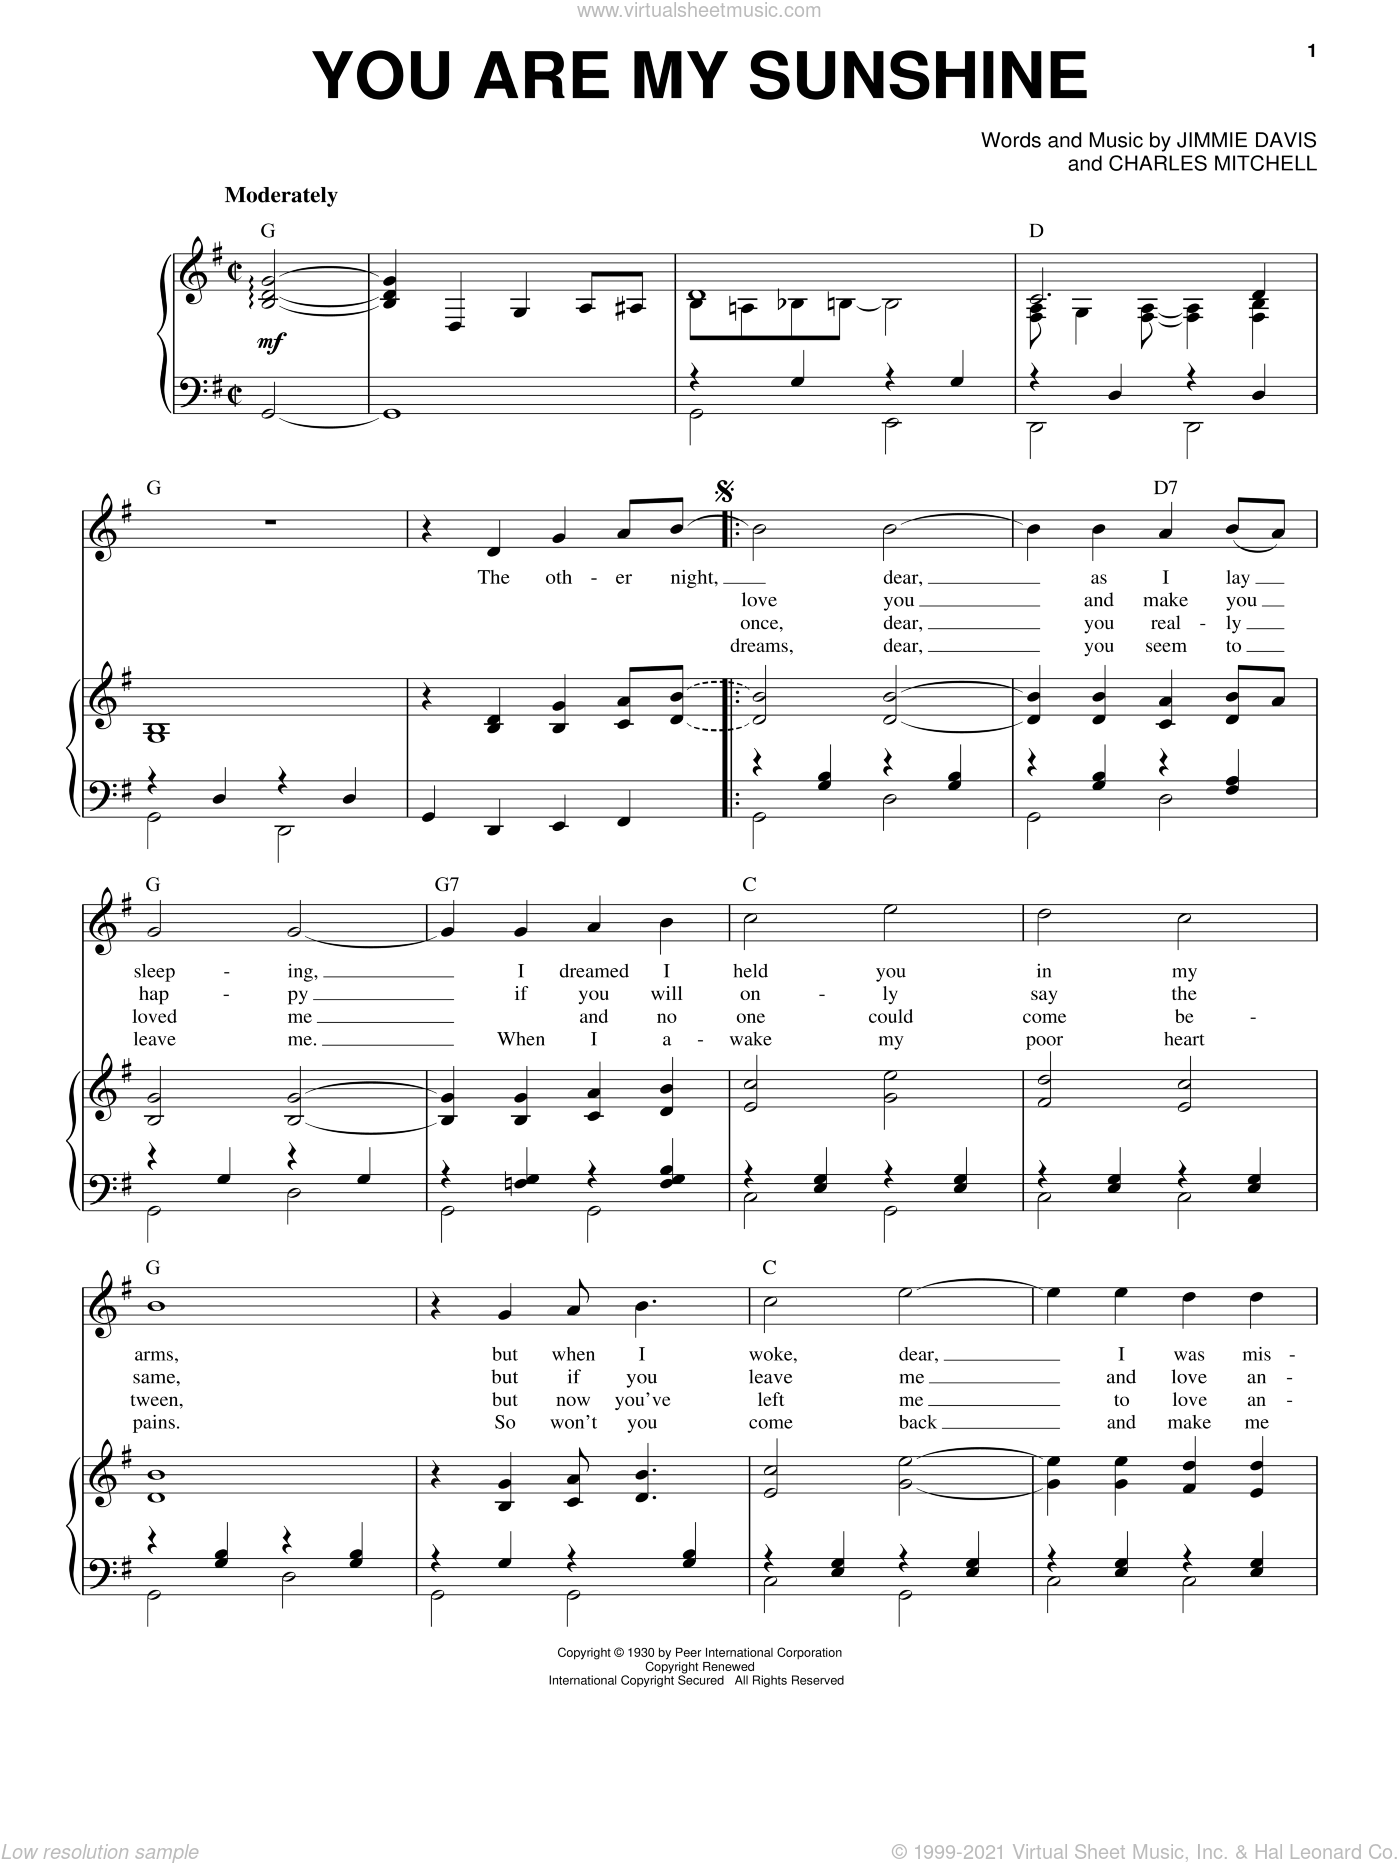 You Are My Sunshine sheet music for voice and piano by Charles Mitchell